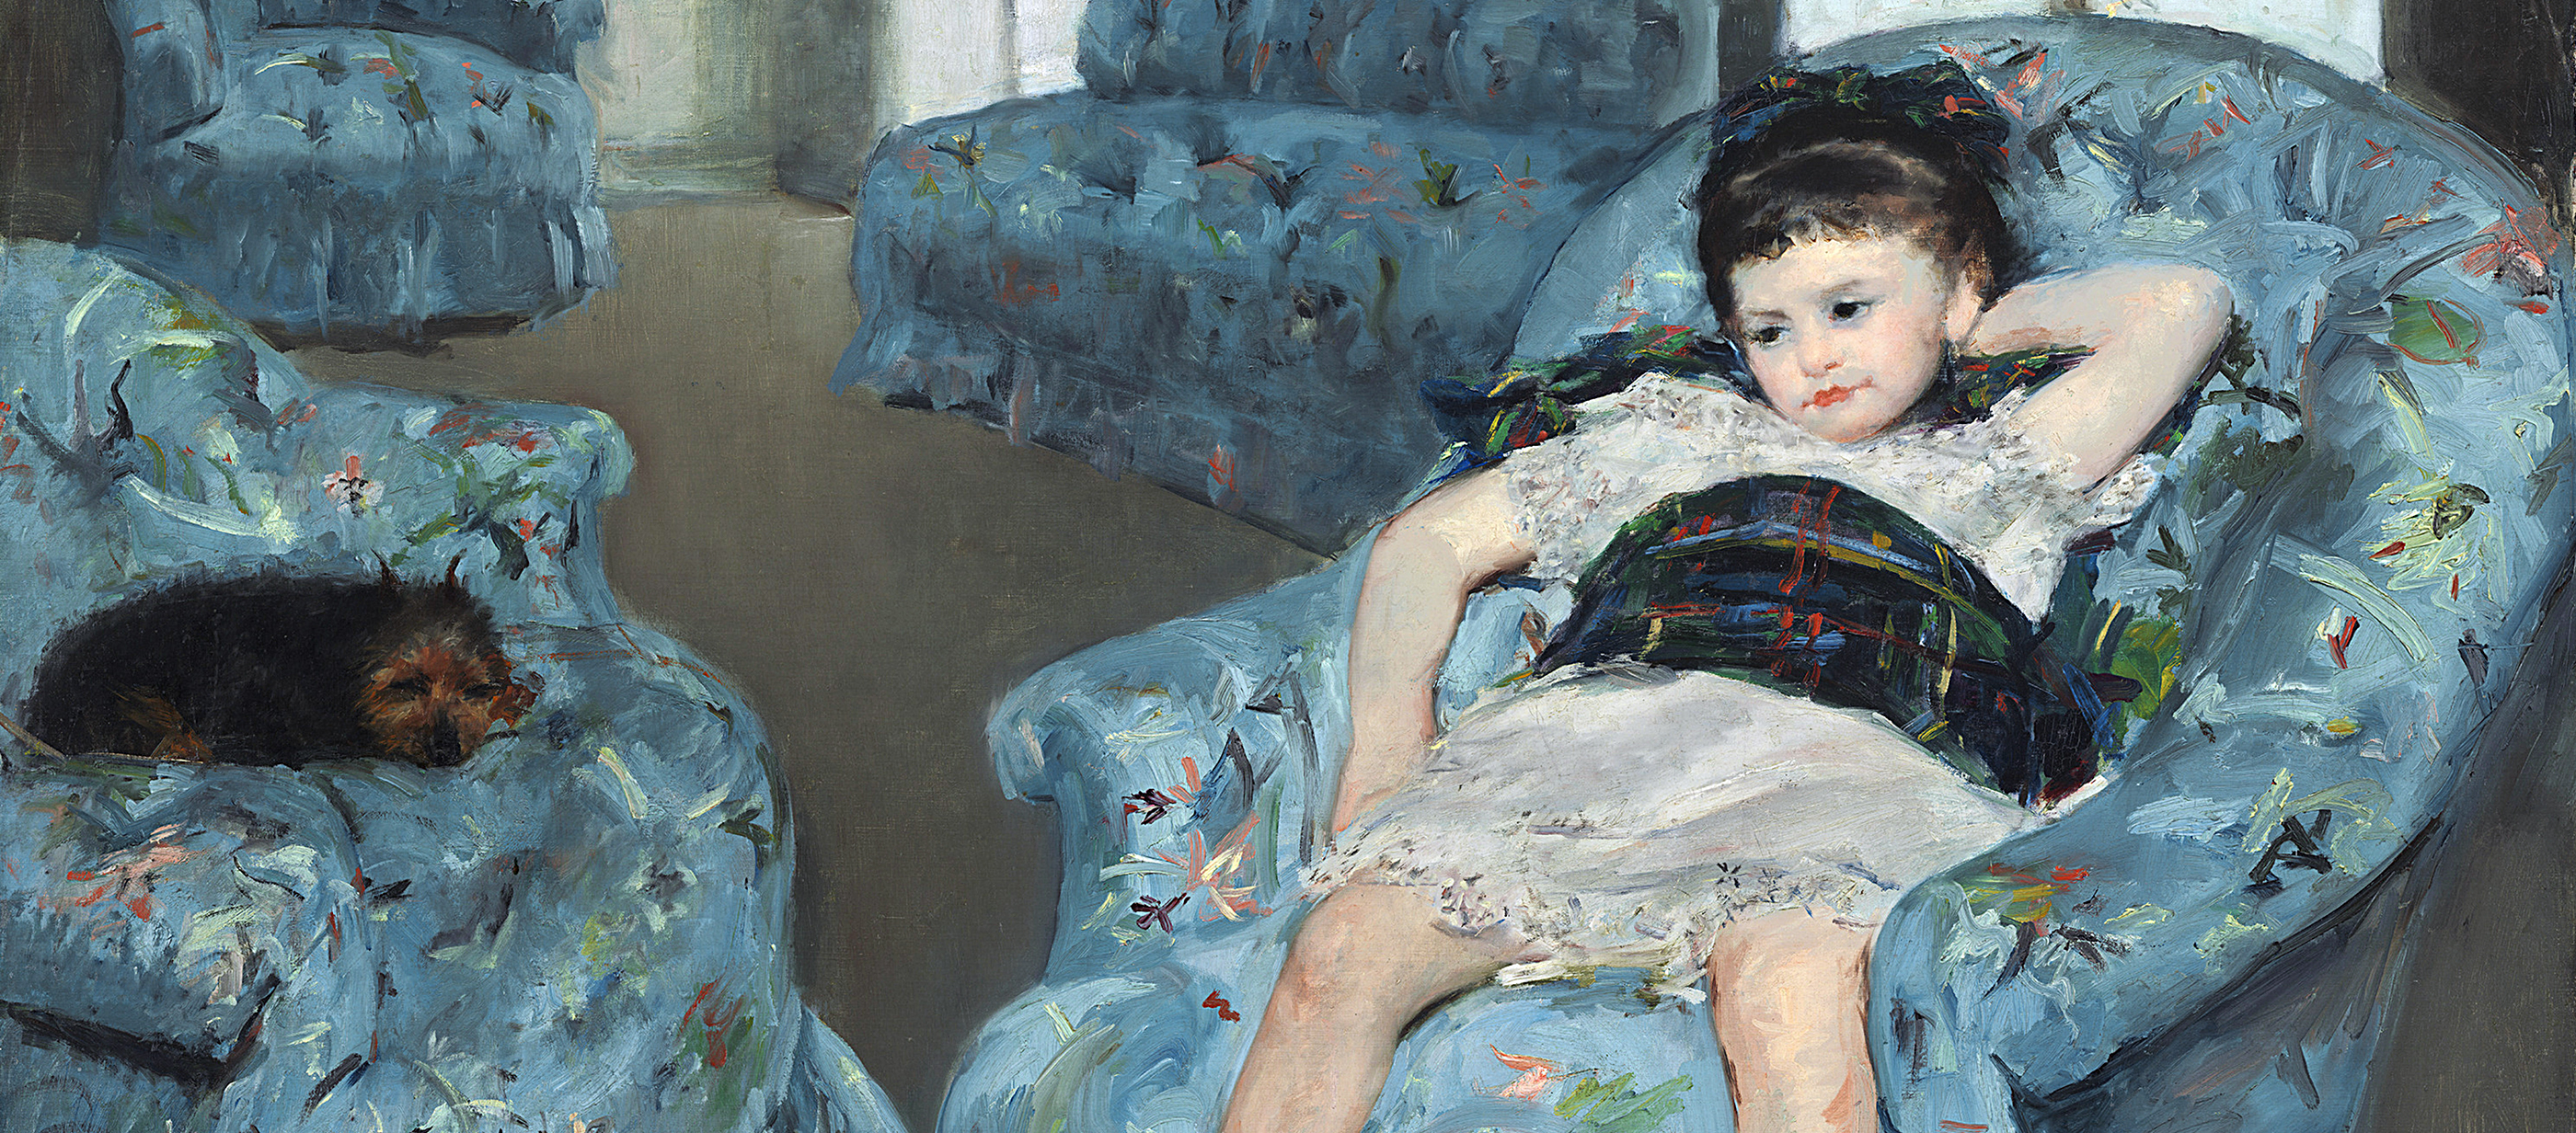 Mary Cassat painting of a little girl wearing a blue dress slumped in a blue armchair.